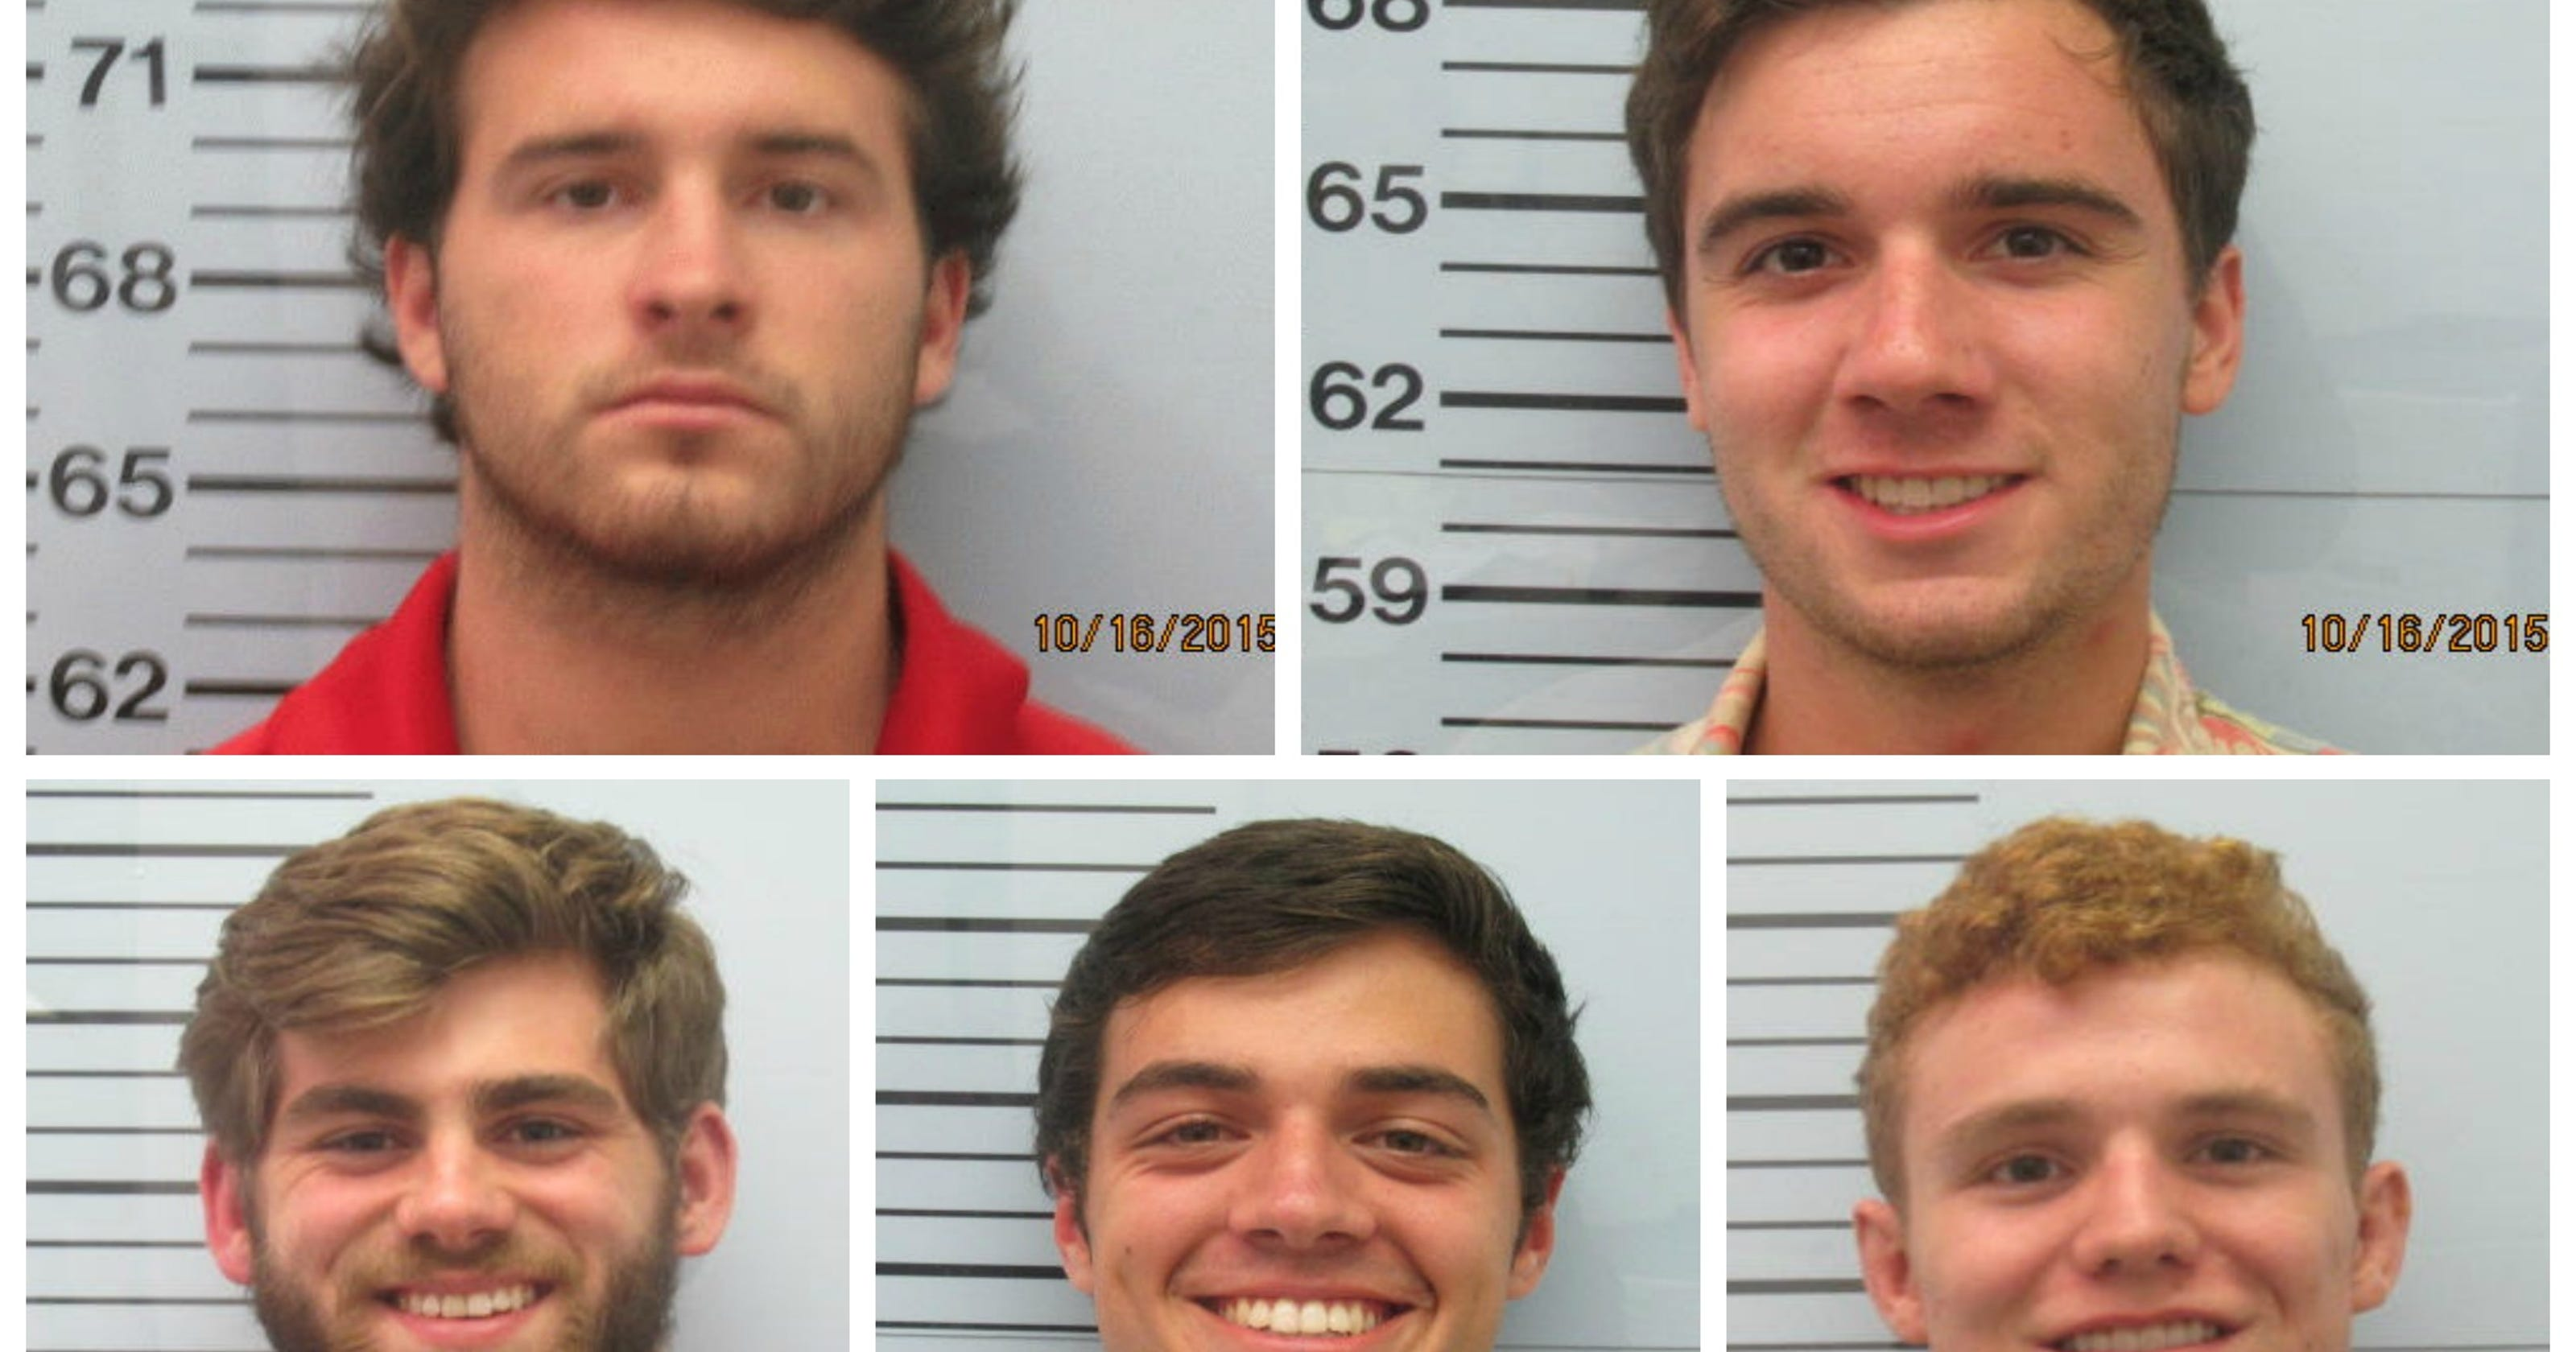 5 arrested in assault at Ole Miss fraternity house